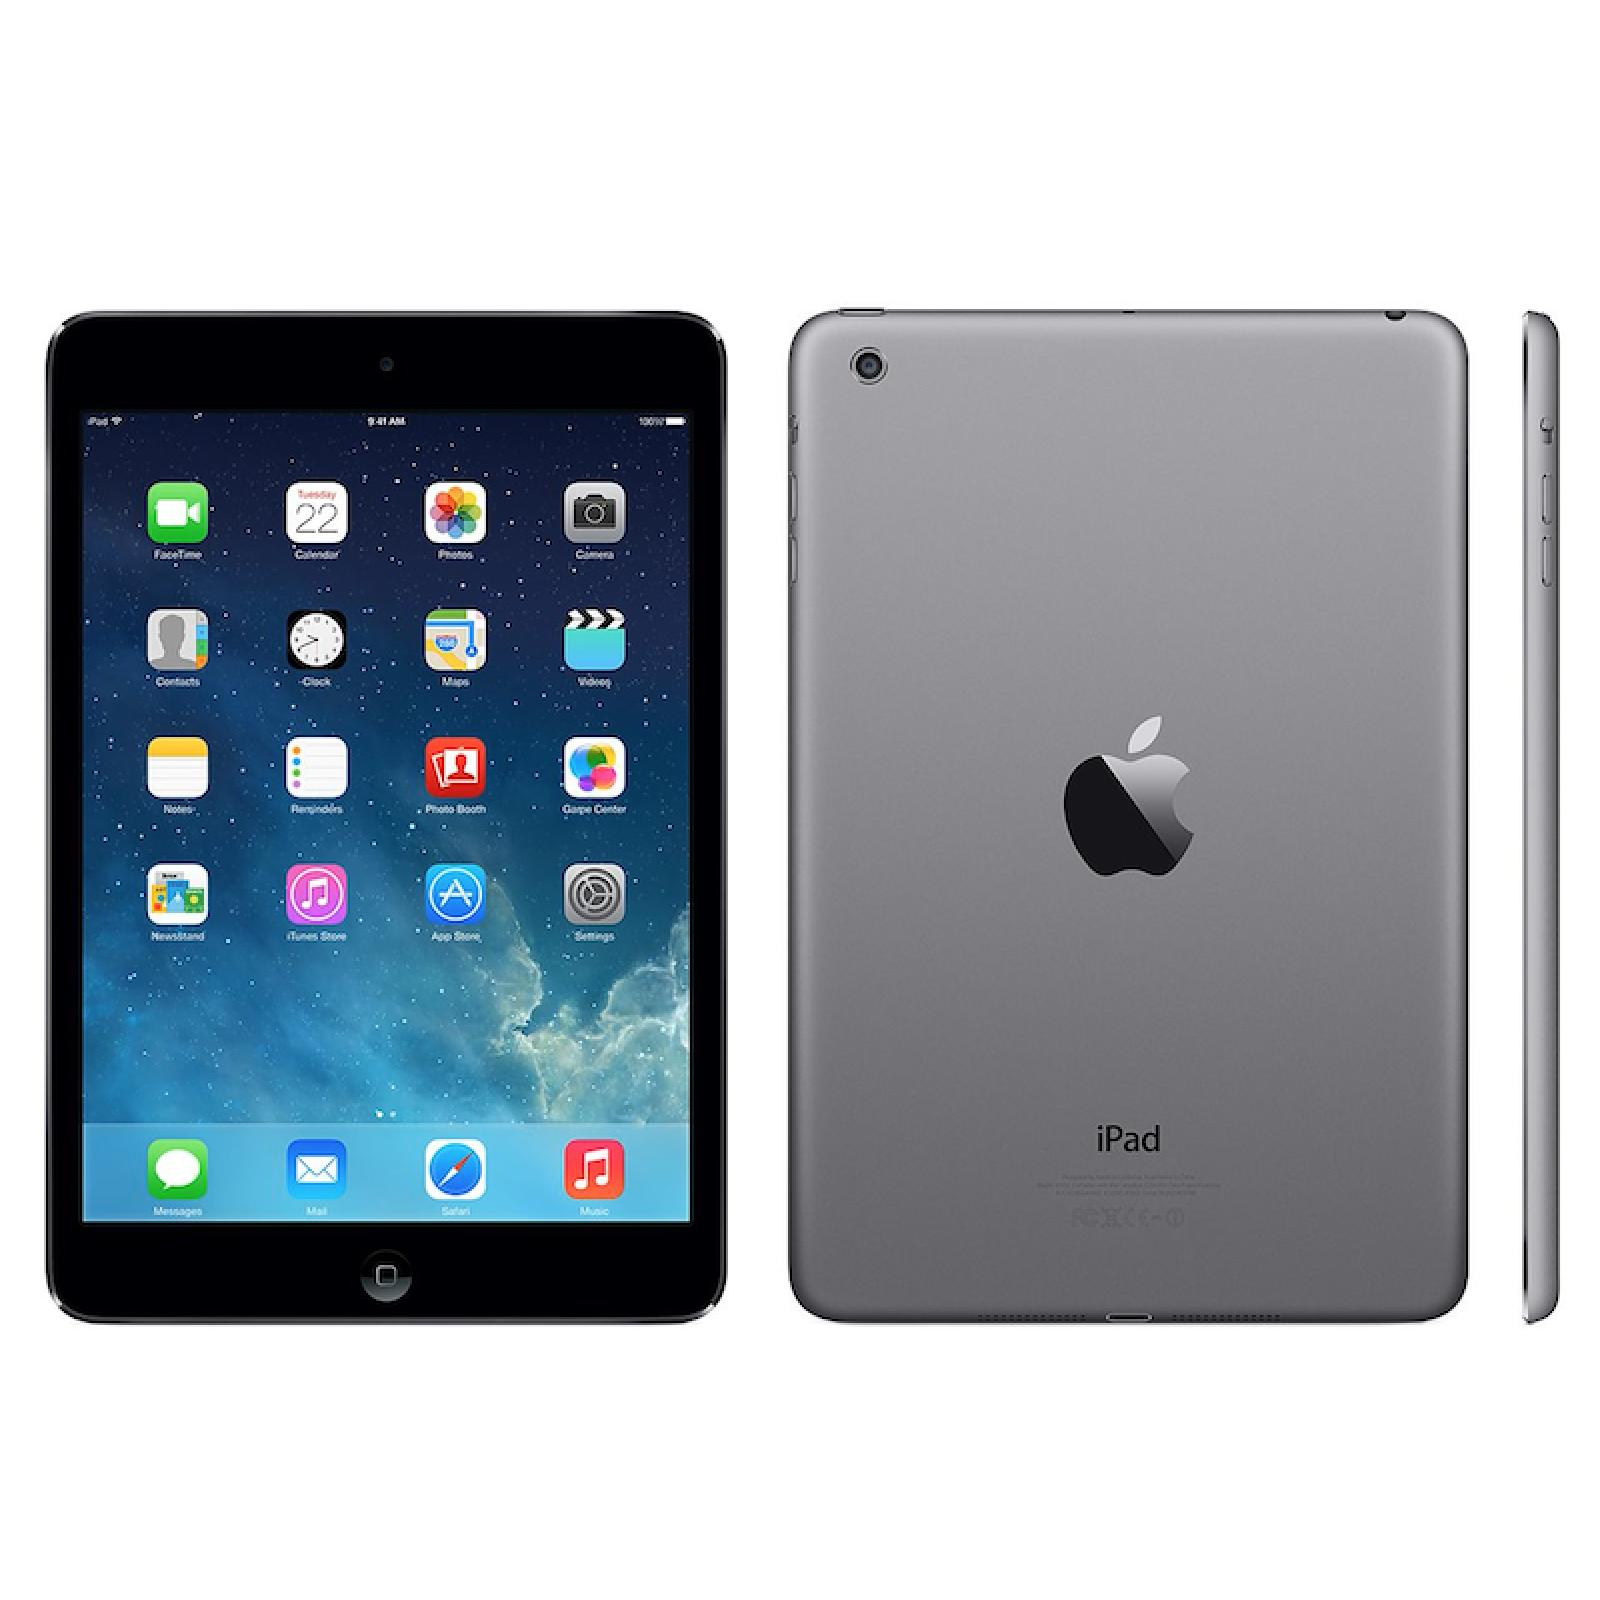 iPad mini 3 64 Gb - Gris espacial - Wifi